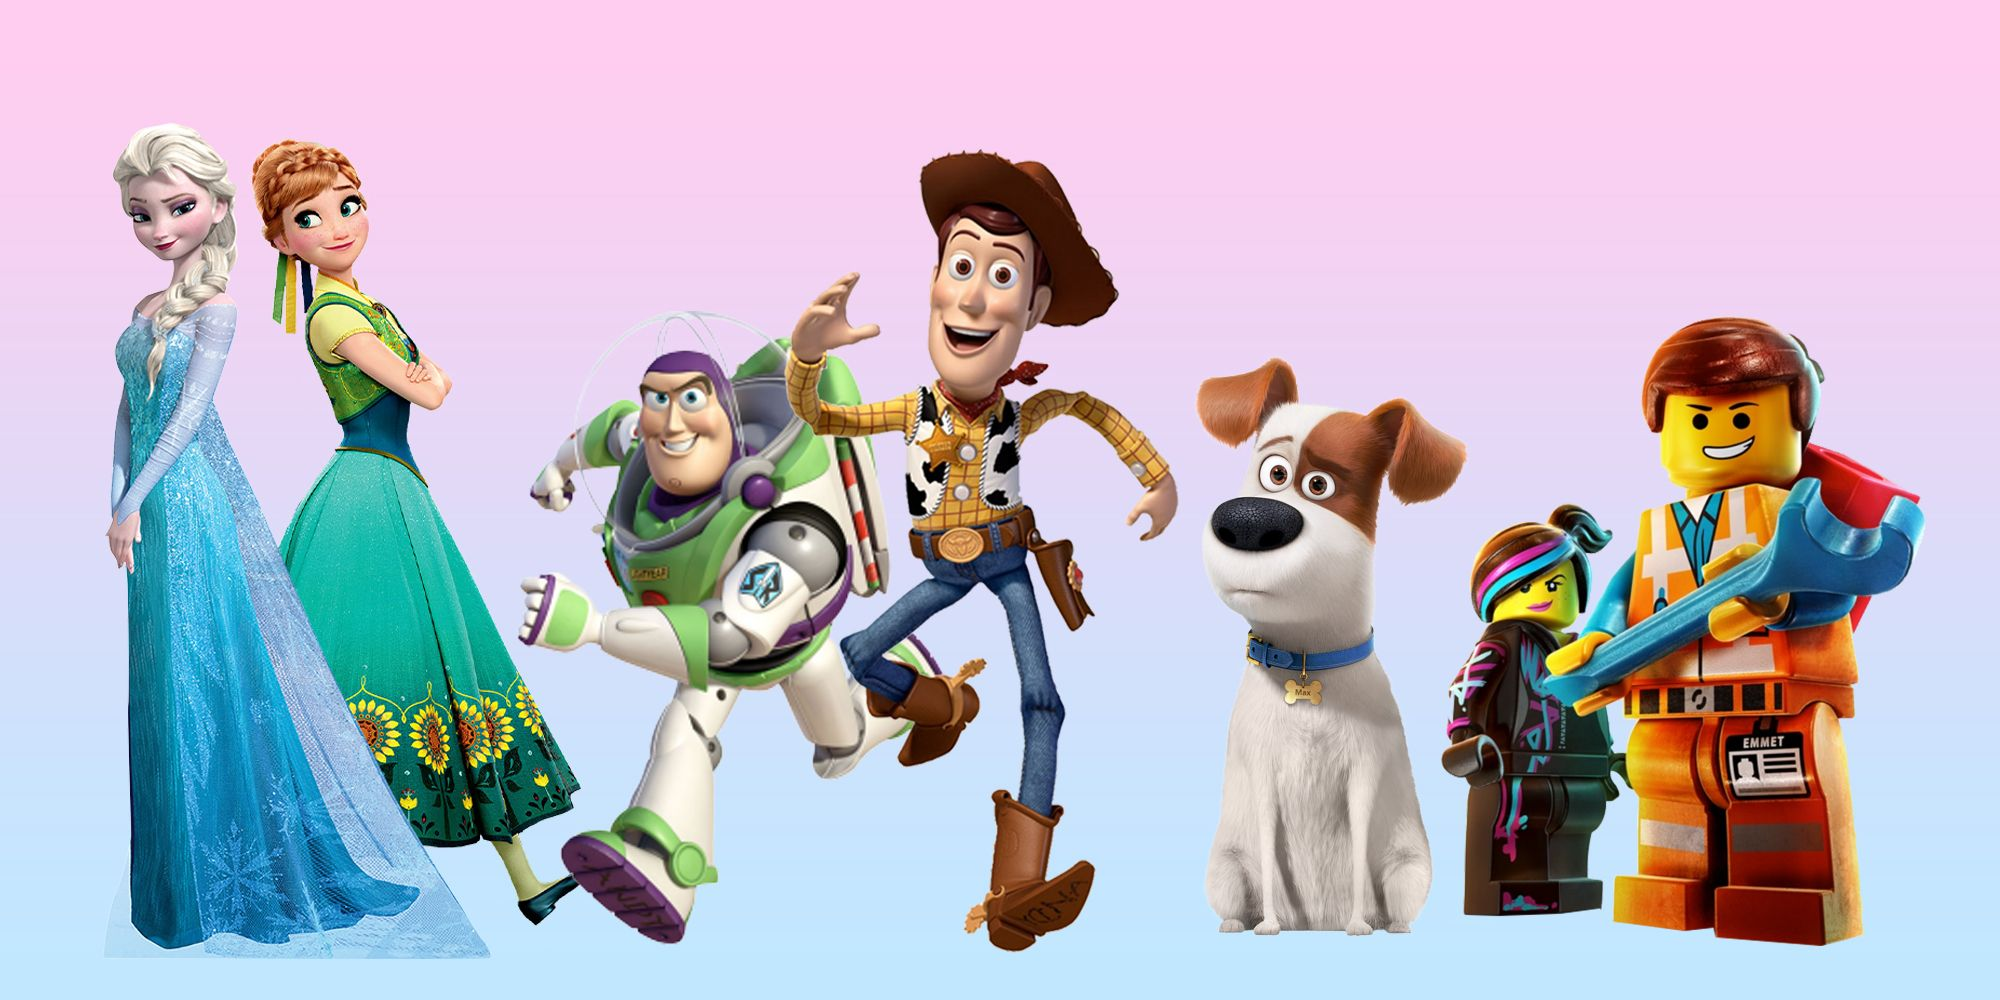 8 Best Animated Movies You Have to Watch in 2019 - Top Animated Movies